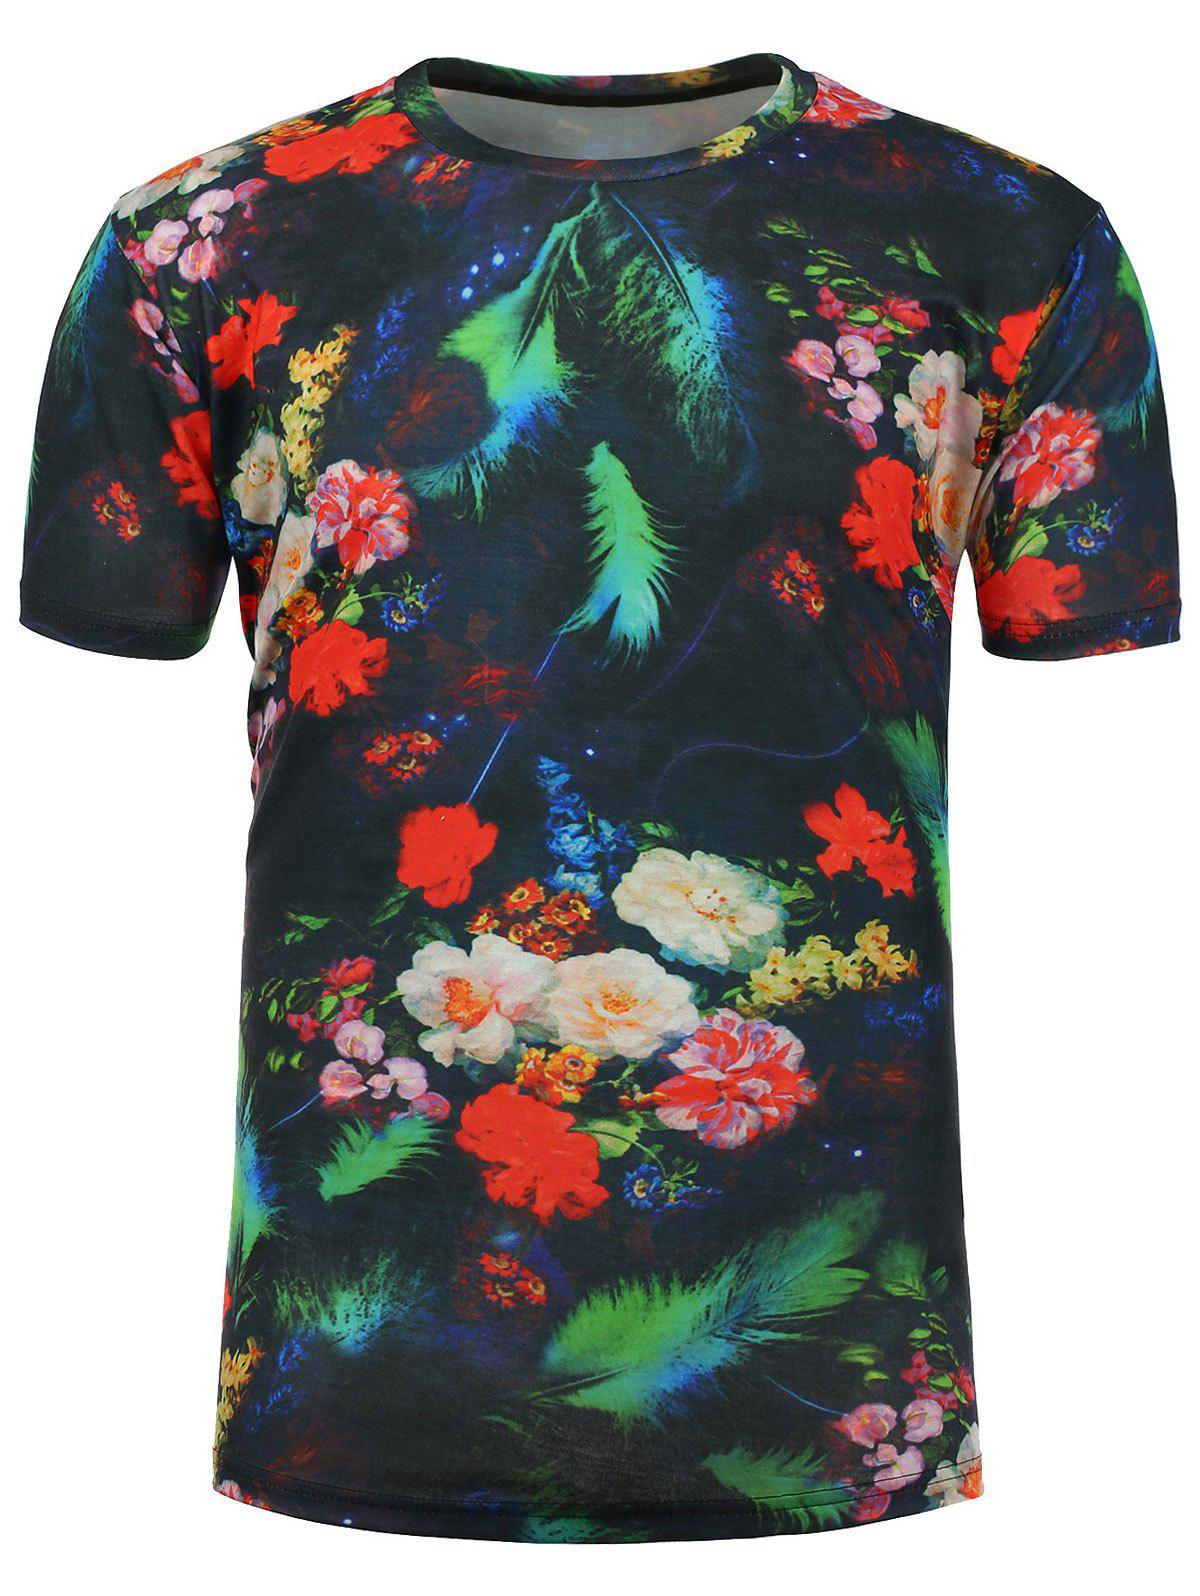 3D Floral Feather Number Print T-Shirt - COLORMIX L